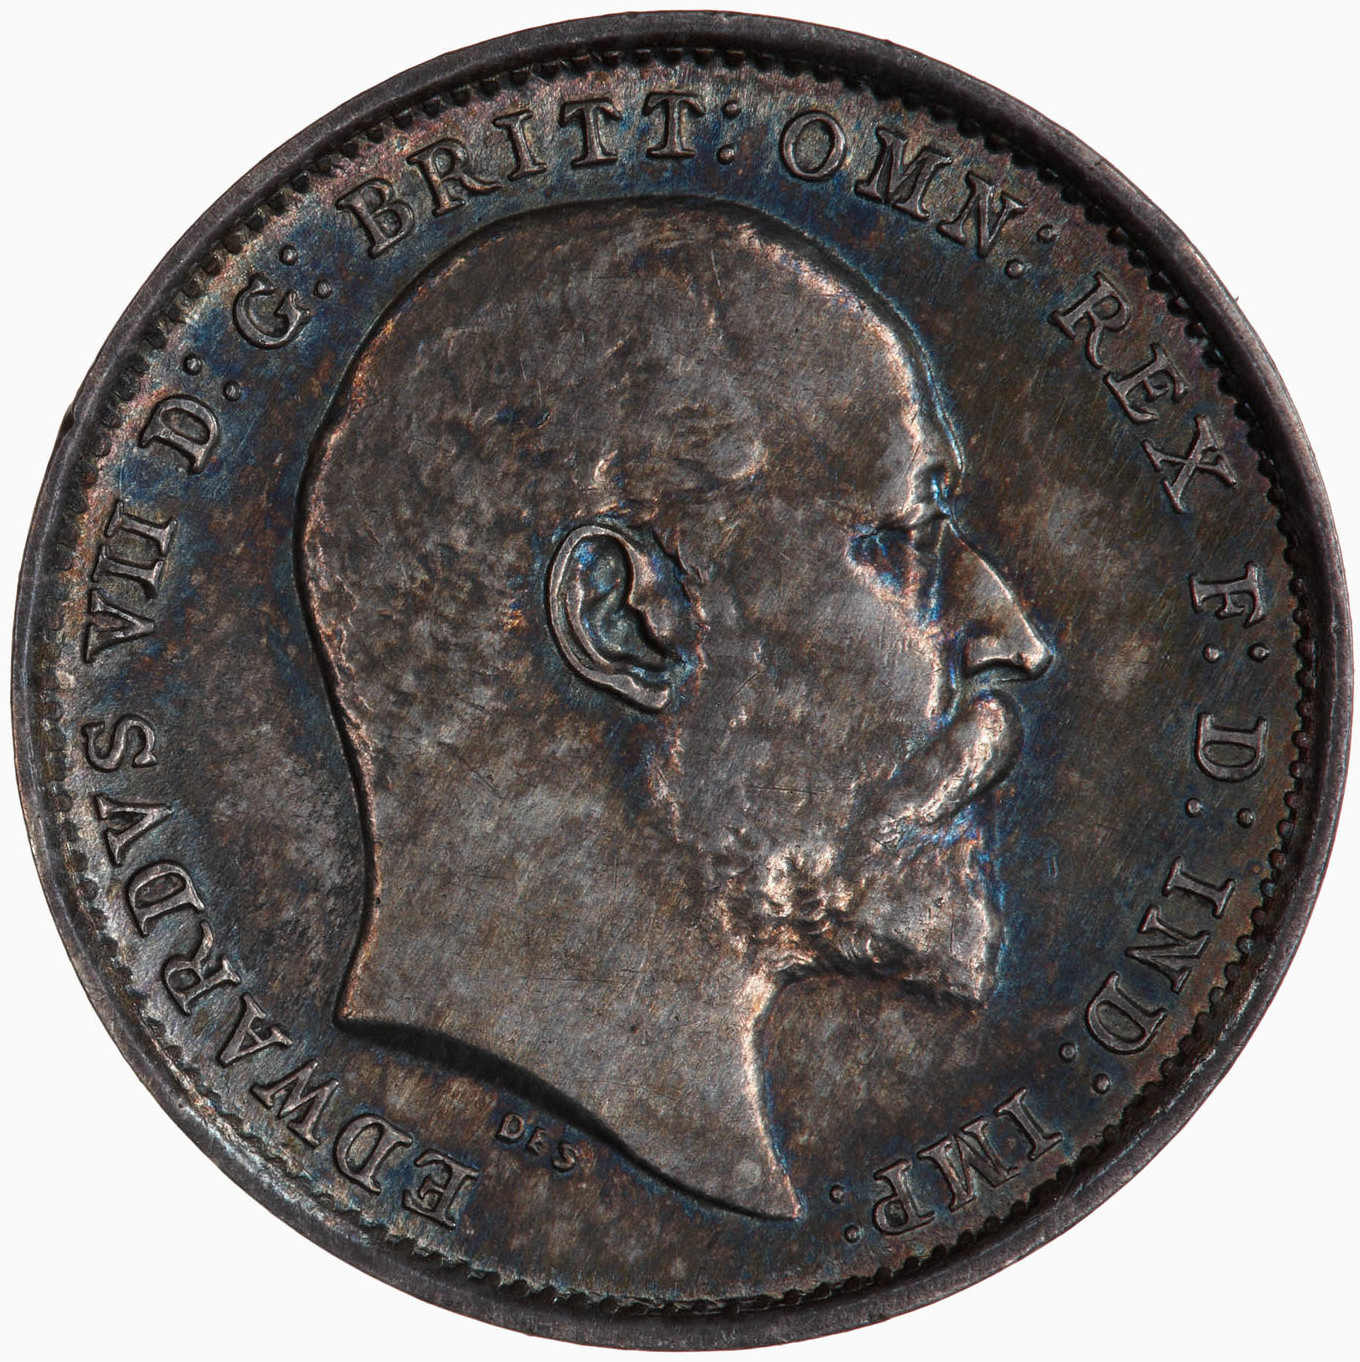 Threepence (Circulating): Photo Coin - Threepence, Edward VII, Great Britain, 1902